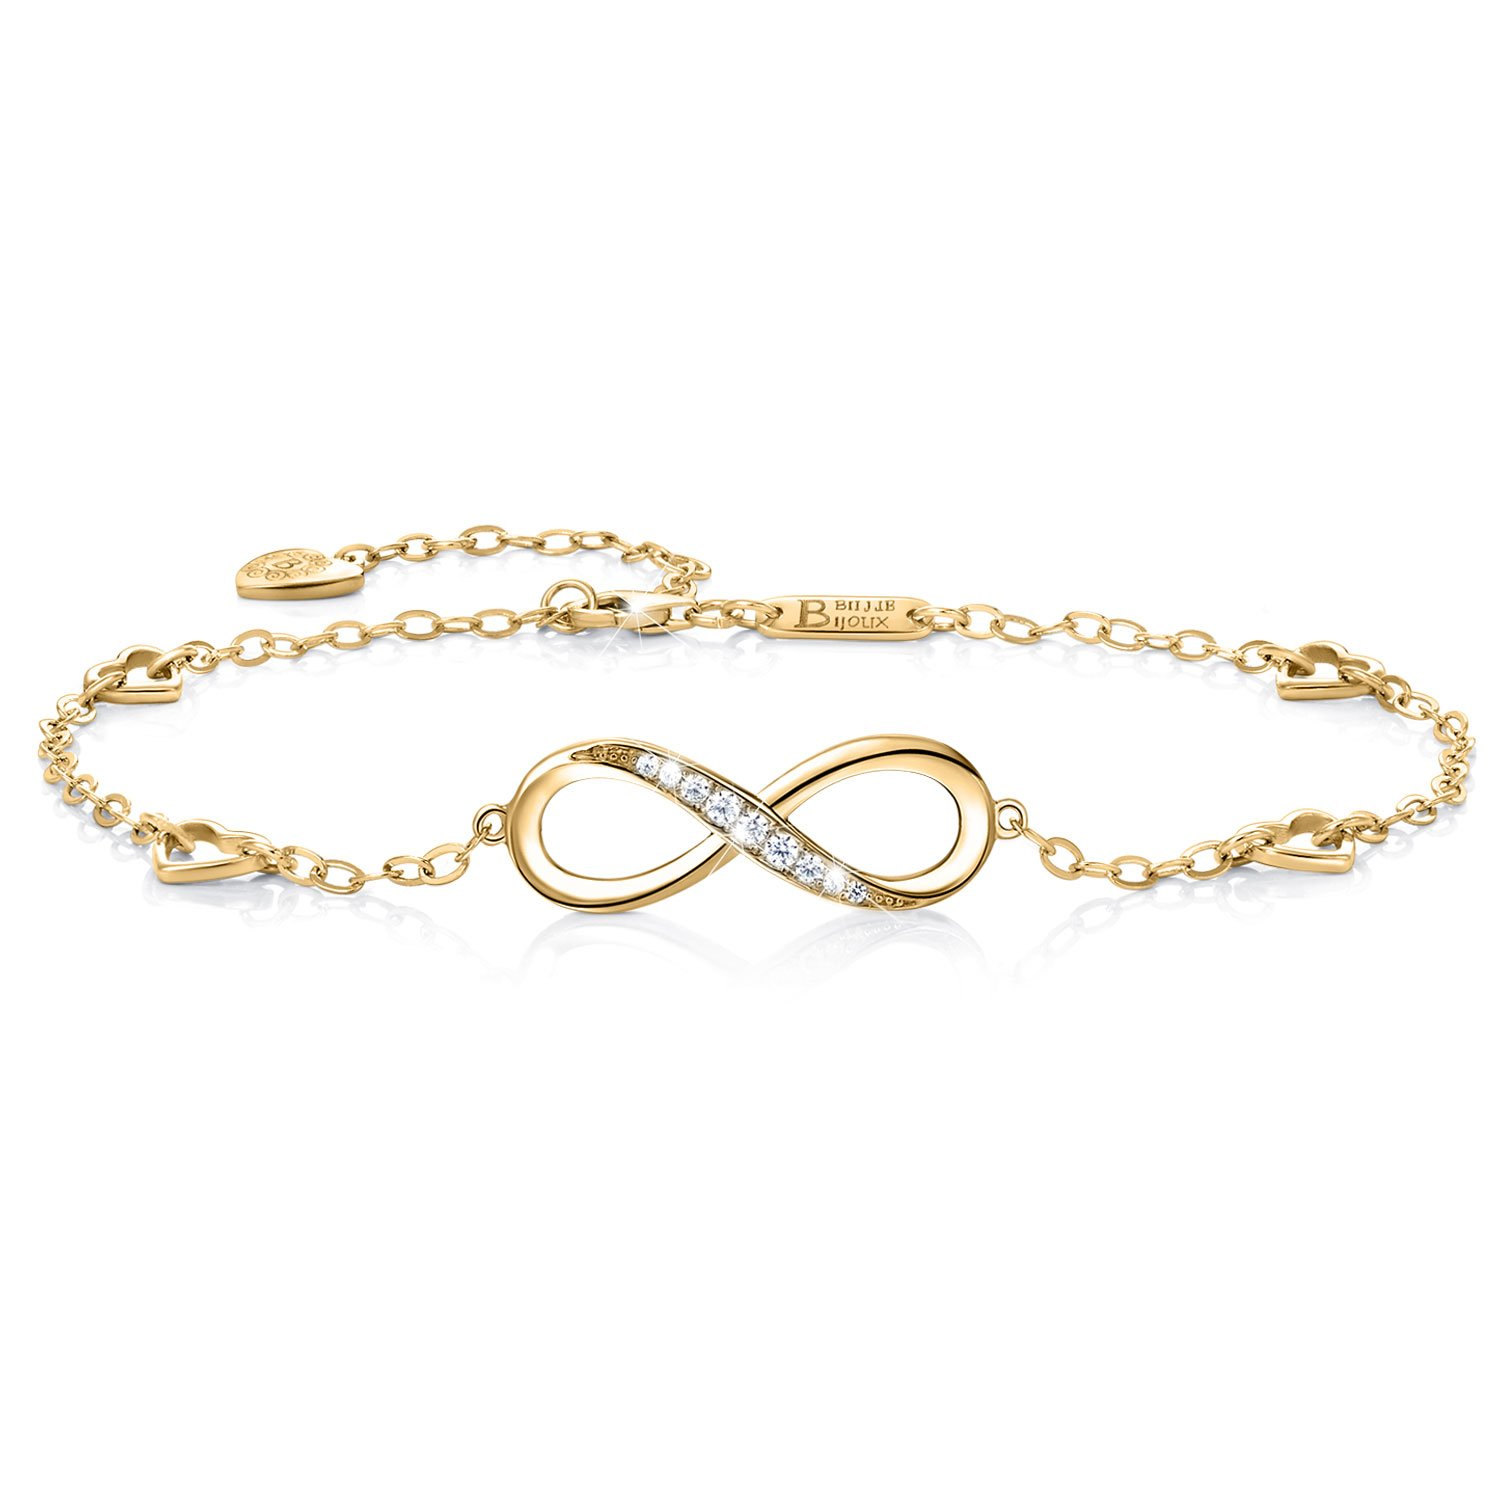 Billie Bijoux Womens 925 Sterling Silver Infinity Endless Love Symbol Charm Adjustable Anklet Bracelet, Large Bracelet Gold Plated Gift for Mother's Day Christmas Day Valentine's Day (gold)